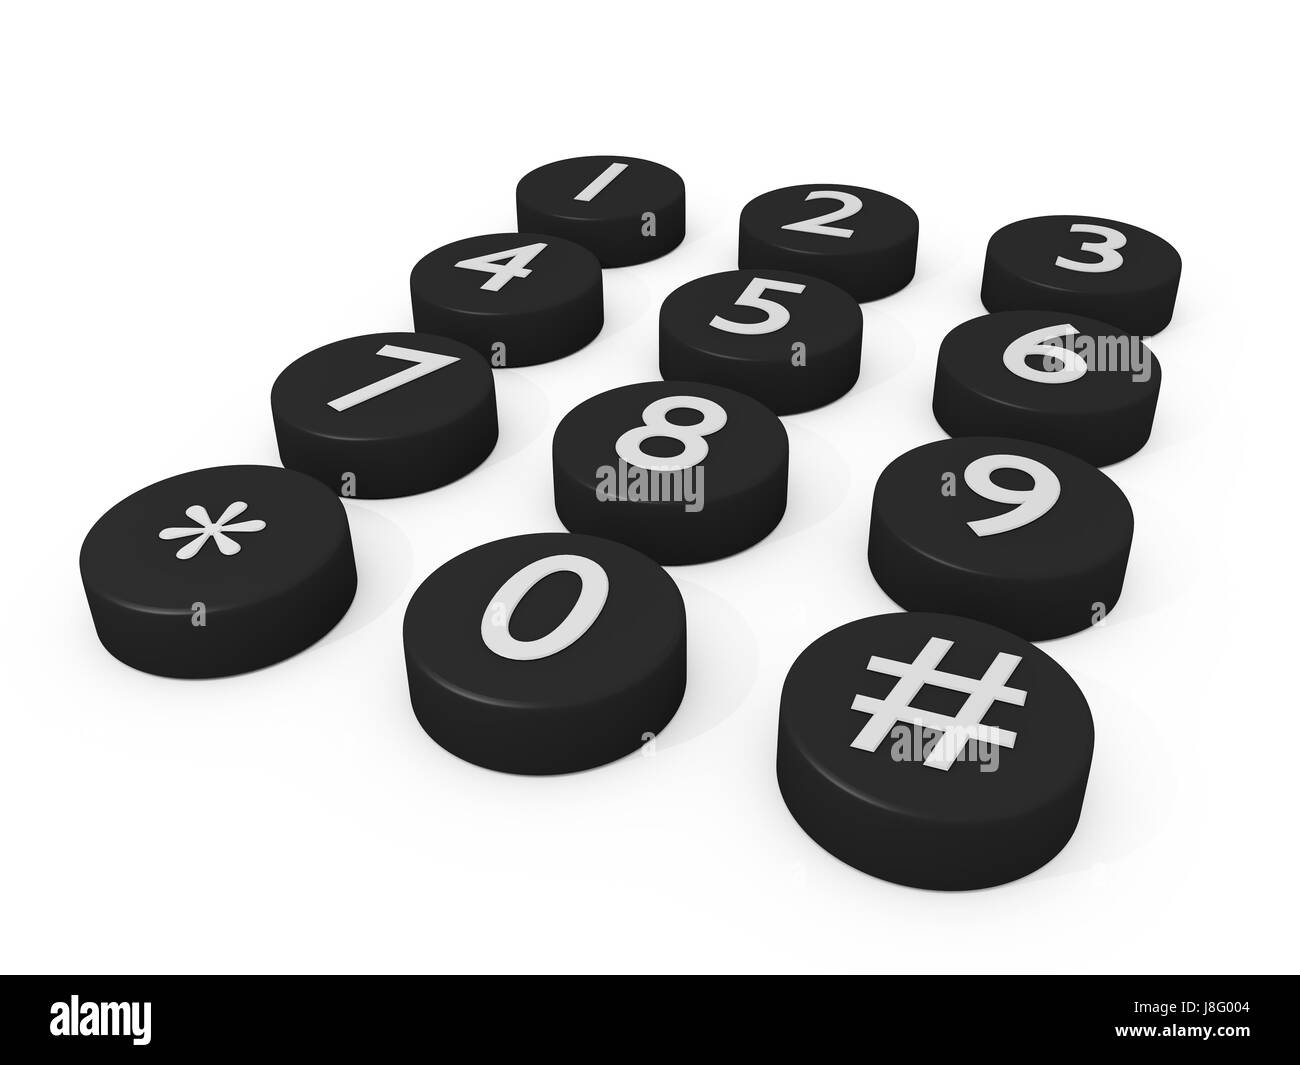 telephone, phone, one, telephonic, numeric, numeral, buttons, keys, numbers, - Stock Image